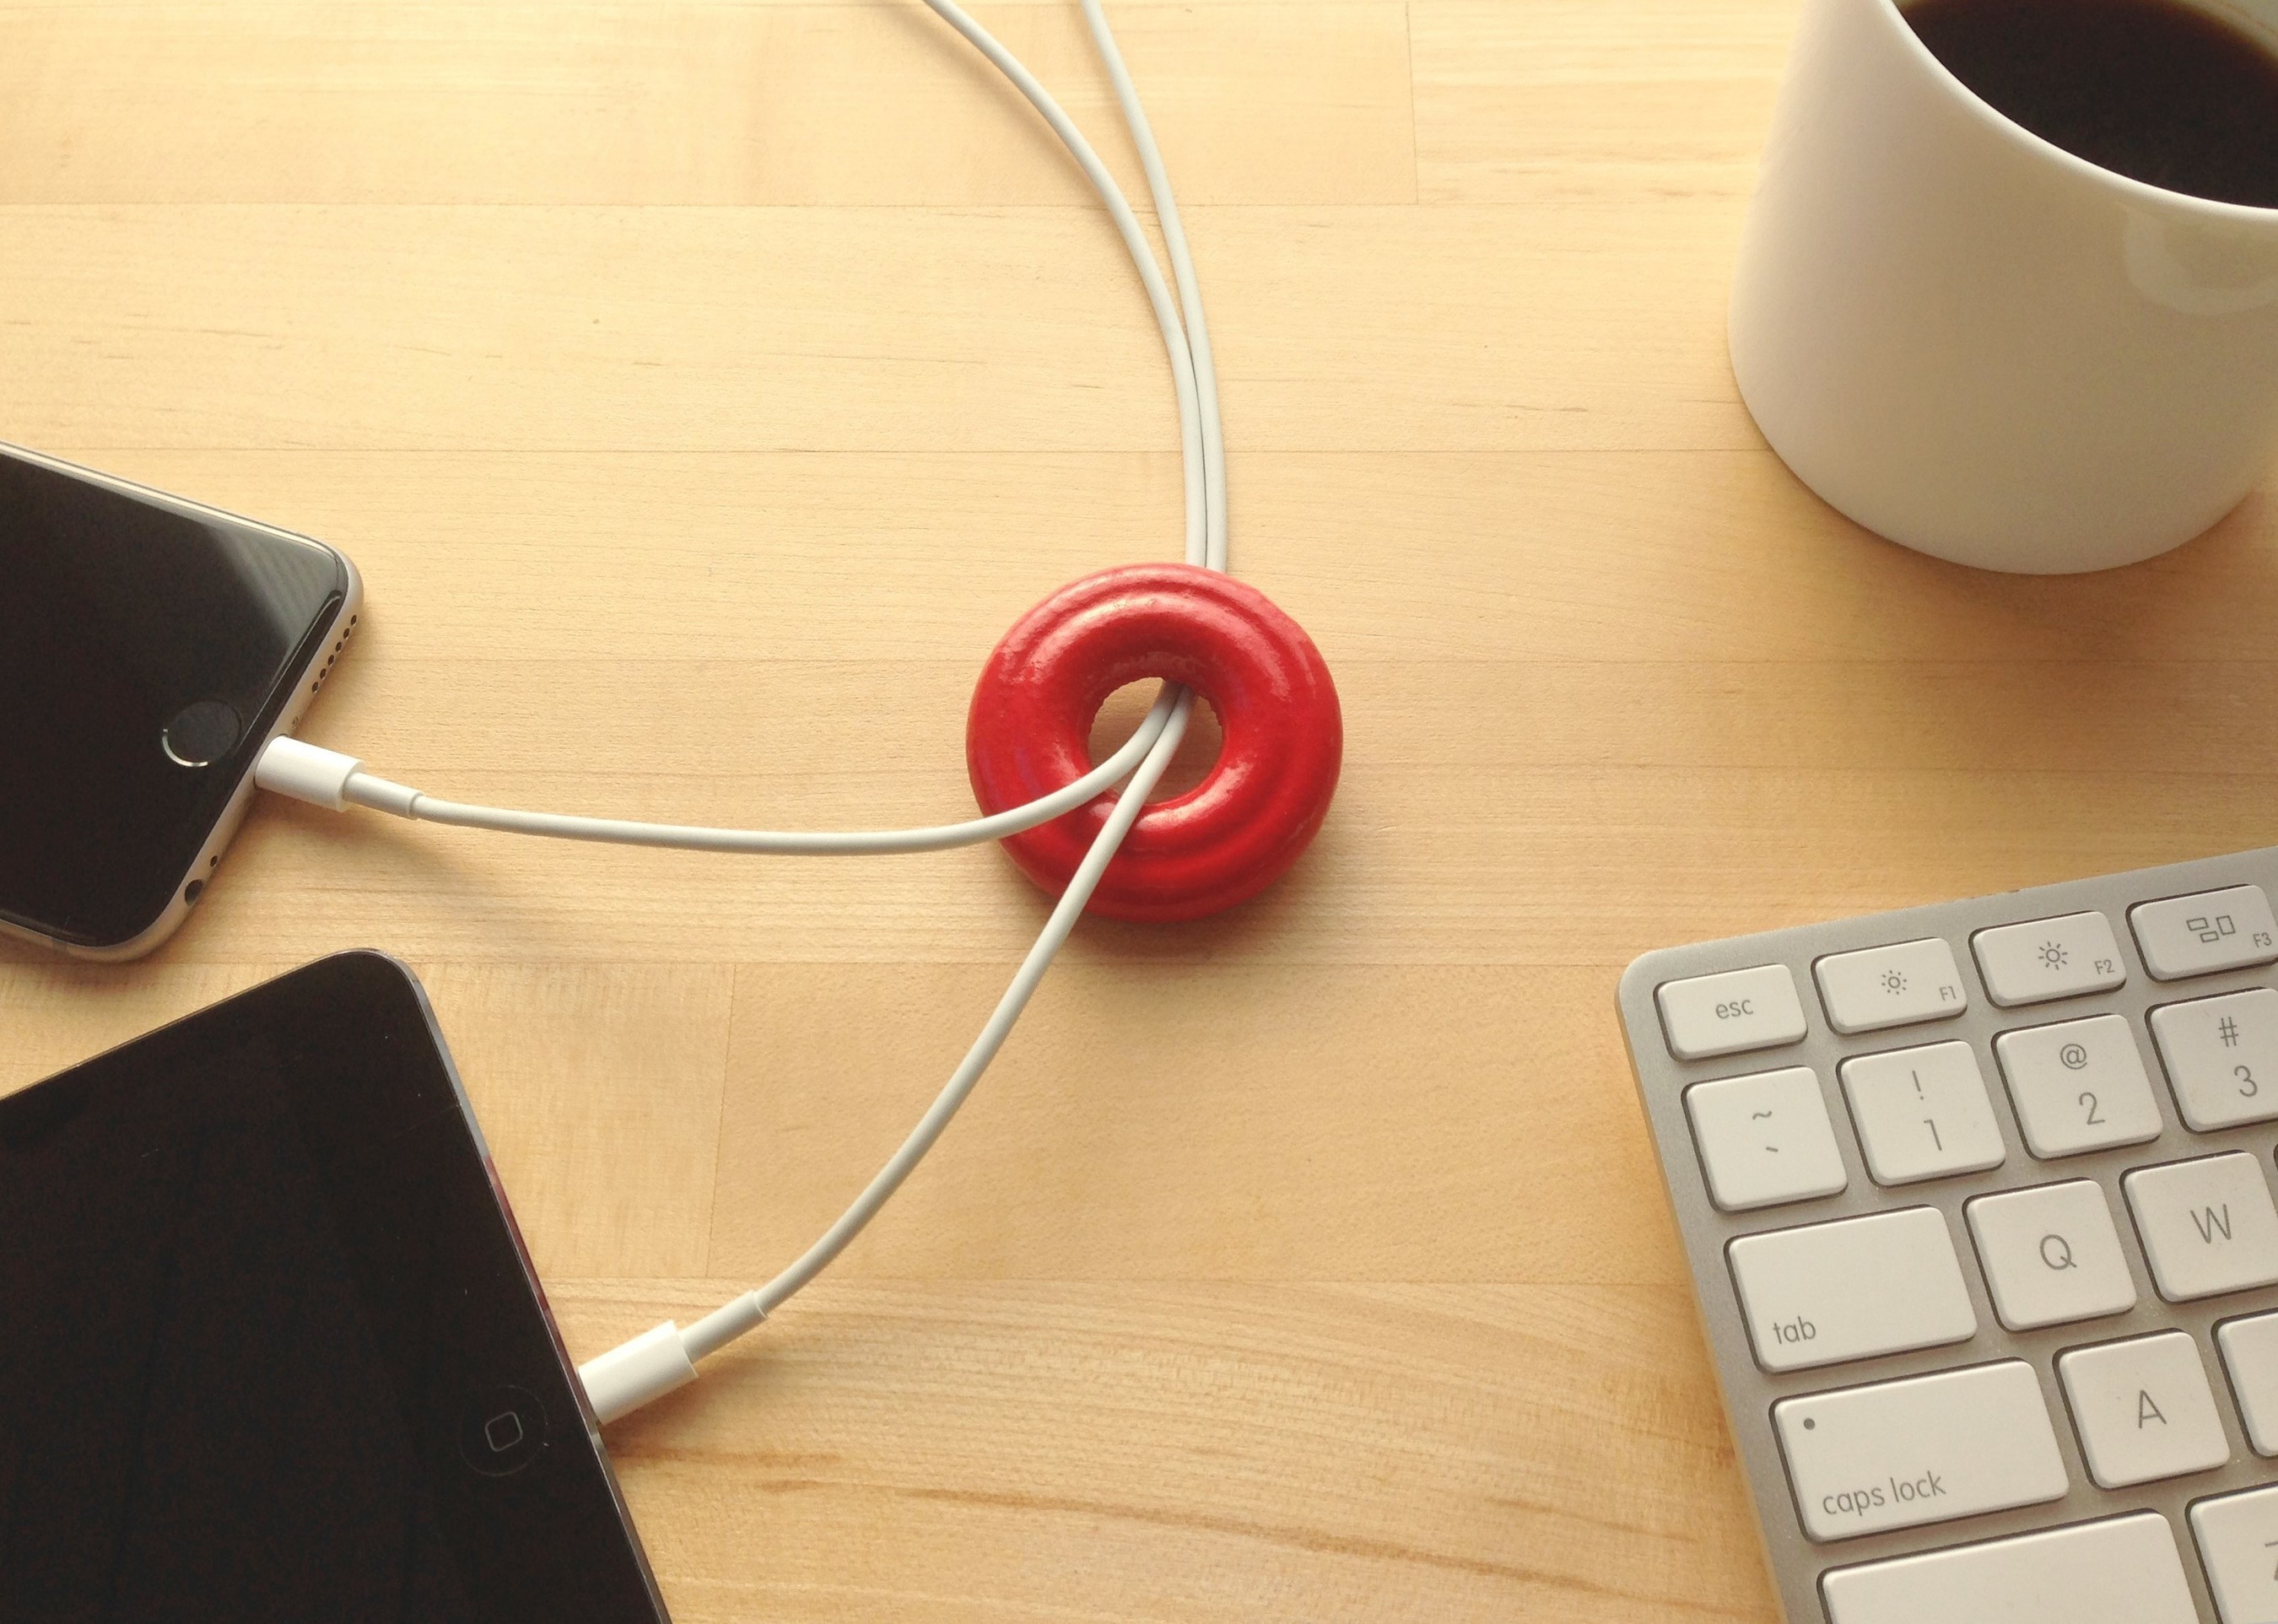 Onehundred Launches 'Bagl: a pocketable cable hub' on Kickstarter